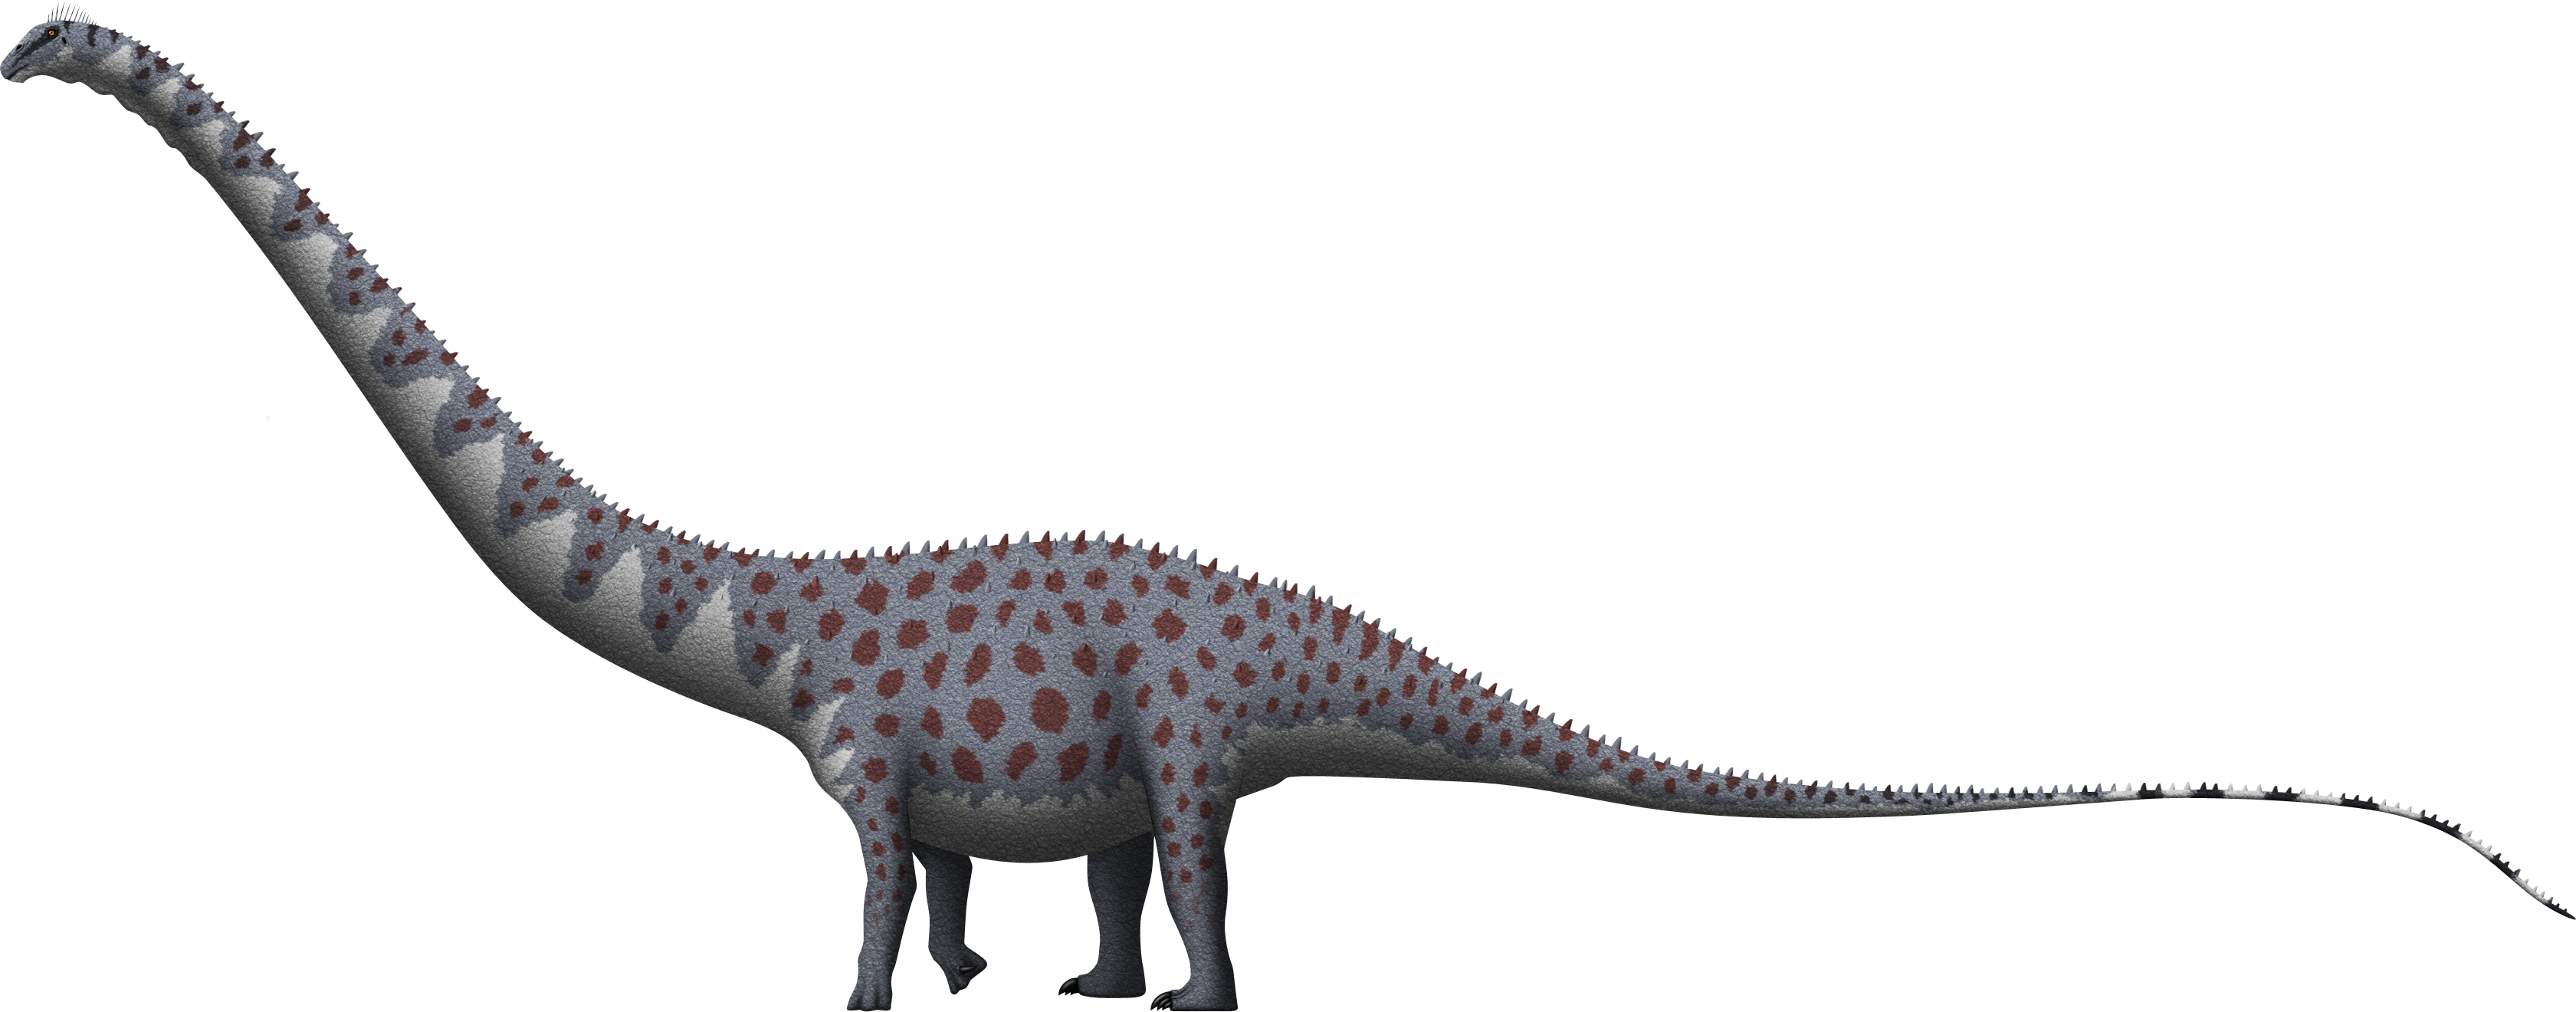 Supersaurus vivianae